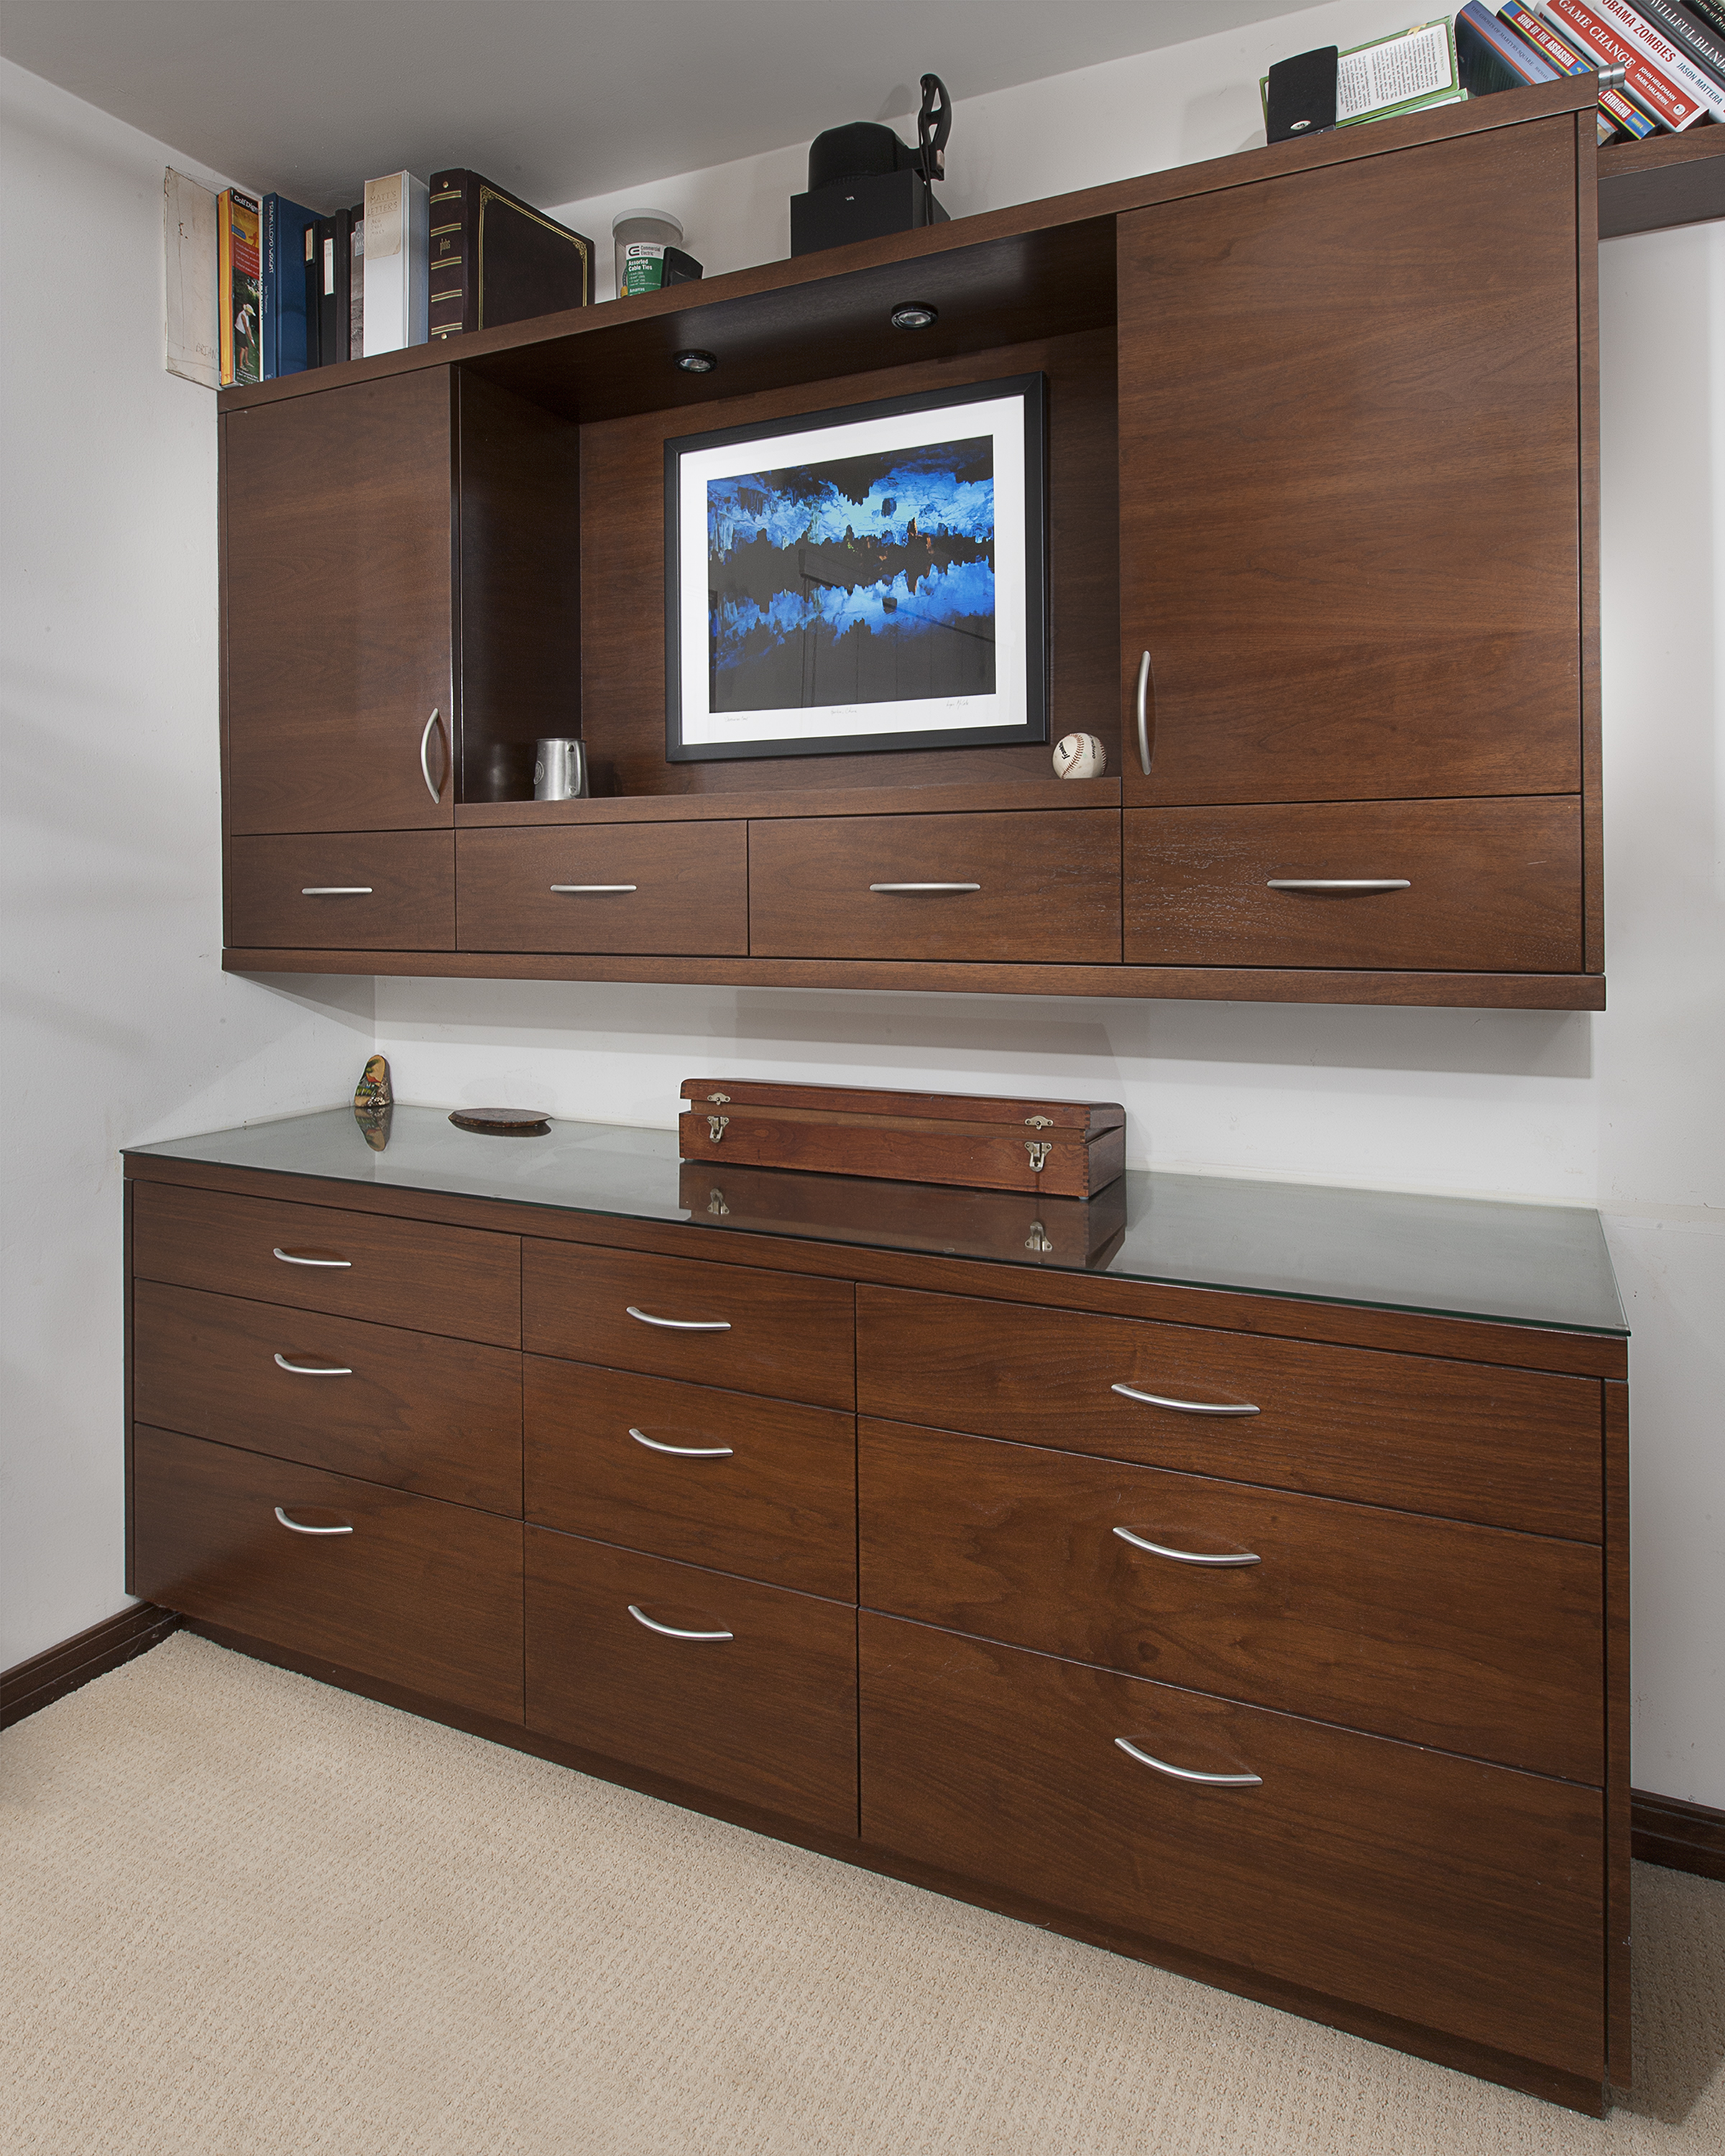 Custom built-in cabinets by Cactus, Inc.